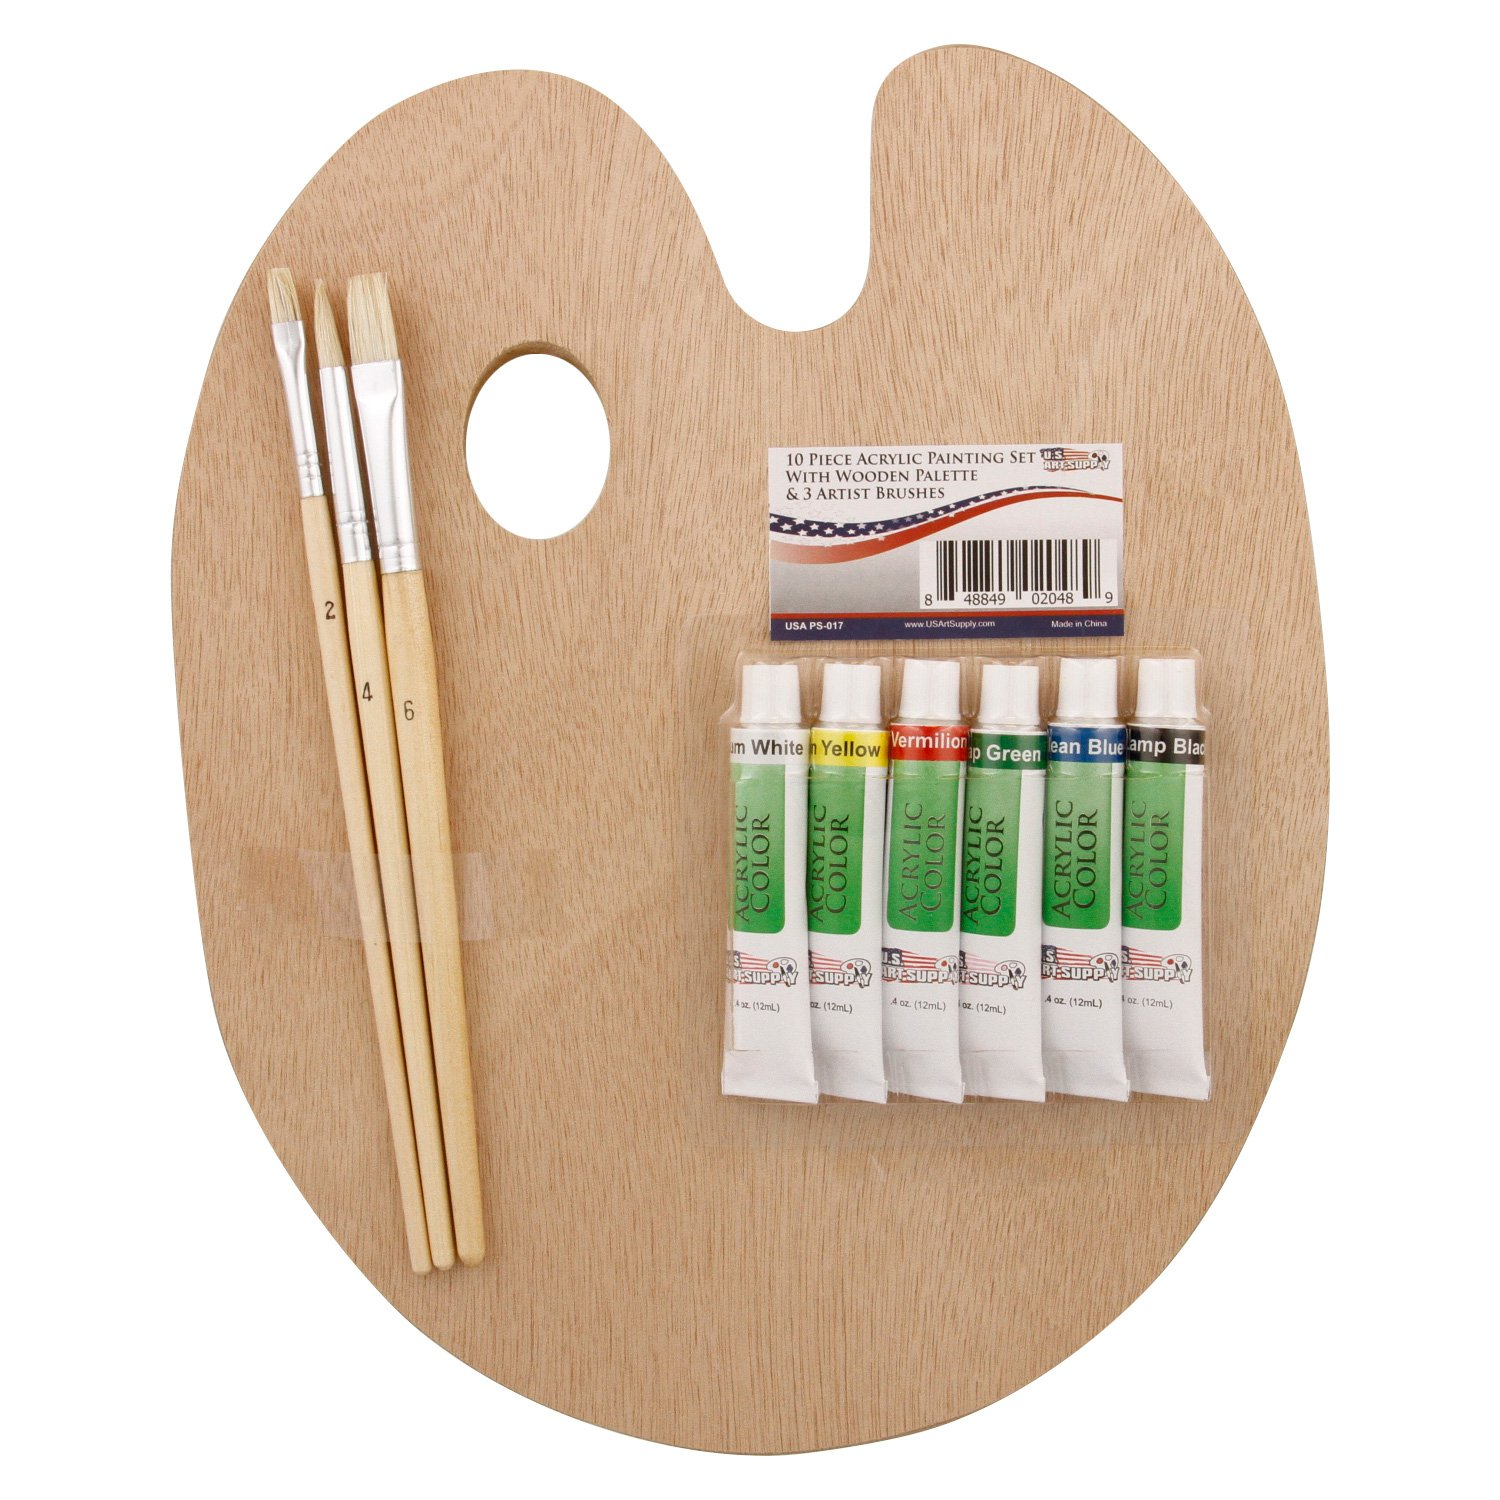 US Art Supply Wood Palette with 6-Piece Acrylic Paint Set & 3-Piece Brush Set PS-017